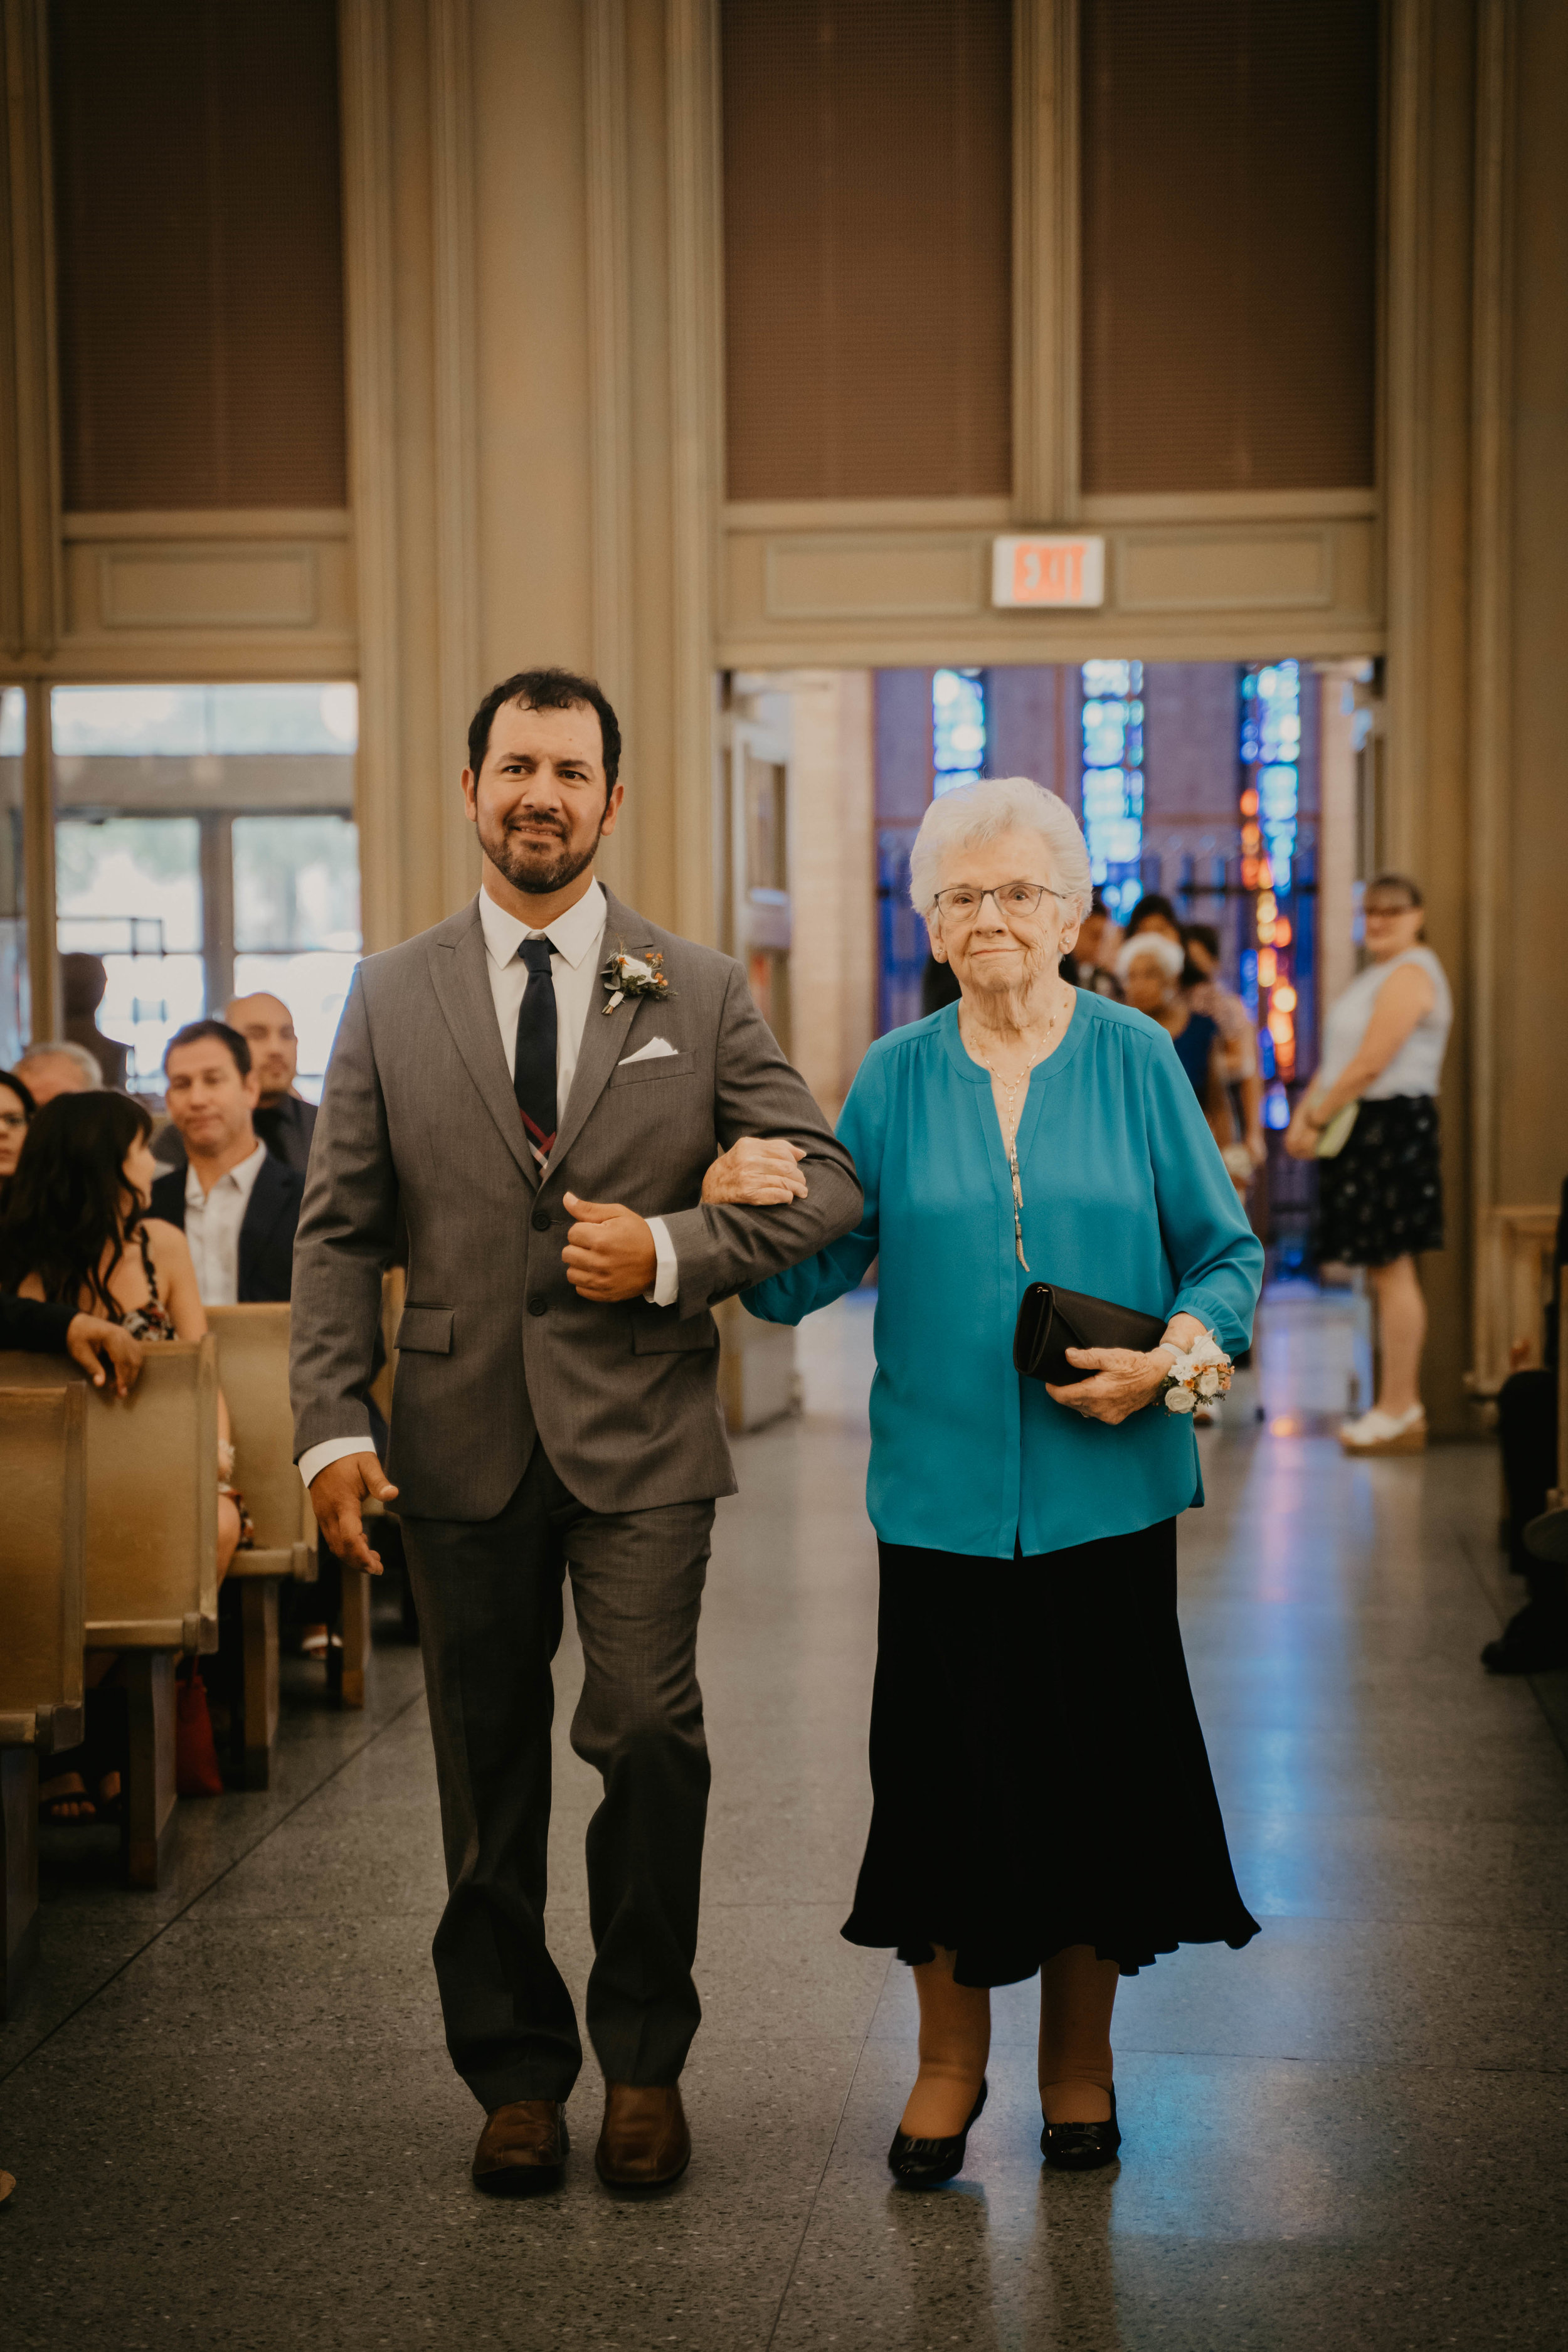 austin-wedding-videographer (335 of 999).jpg